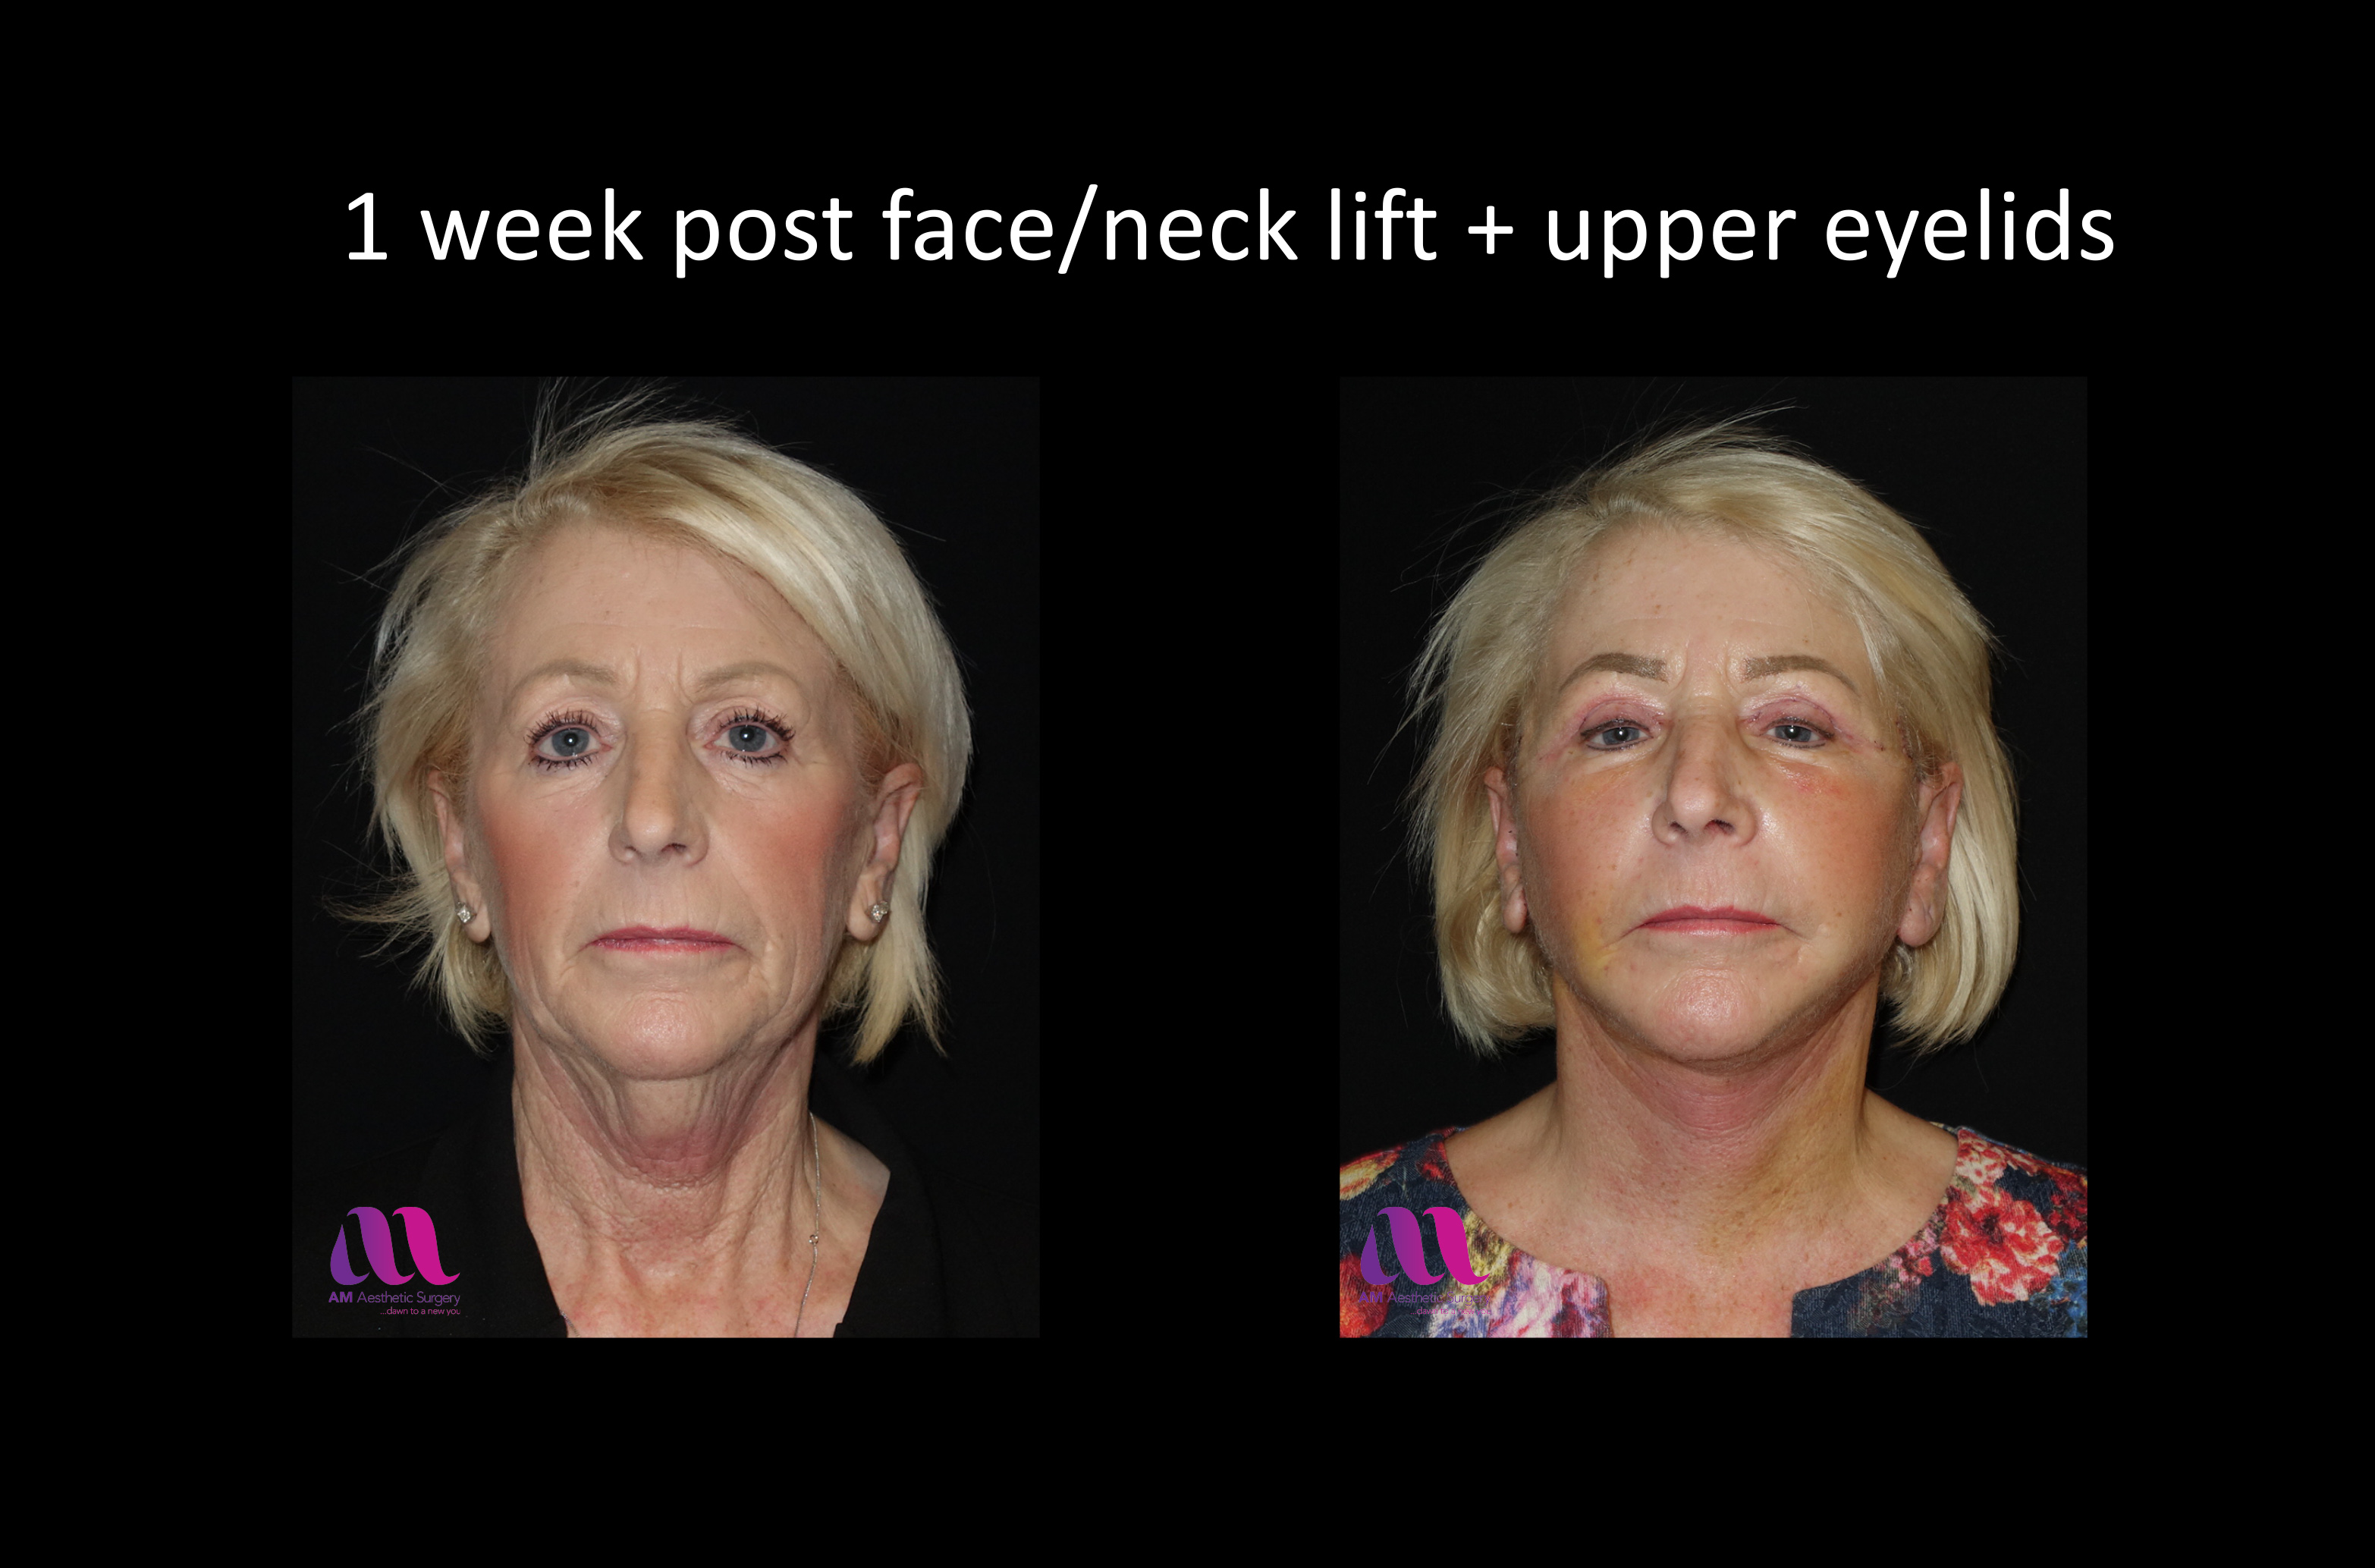 Face Lift +Upp Eyelids14a